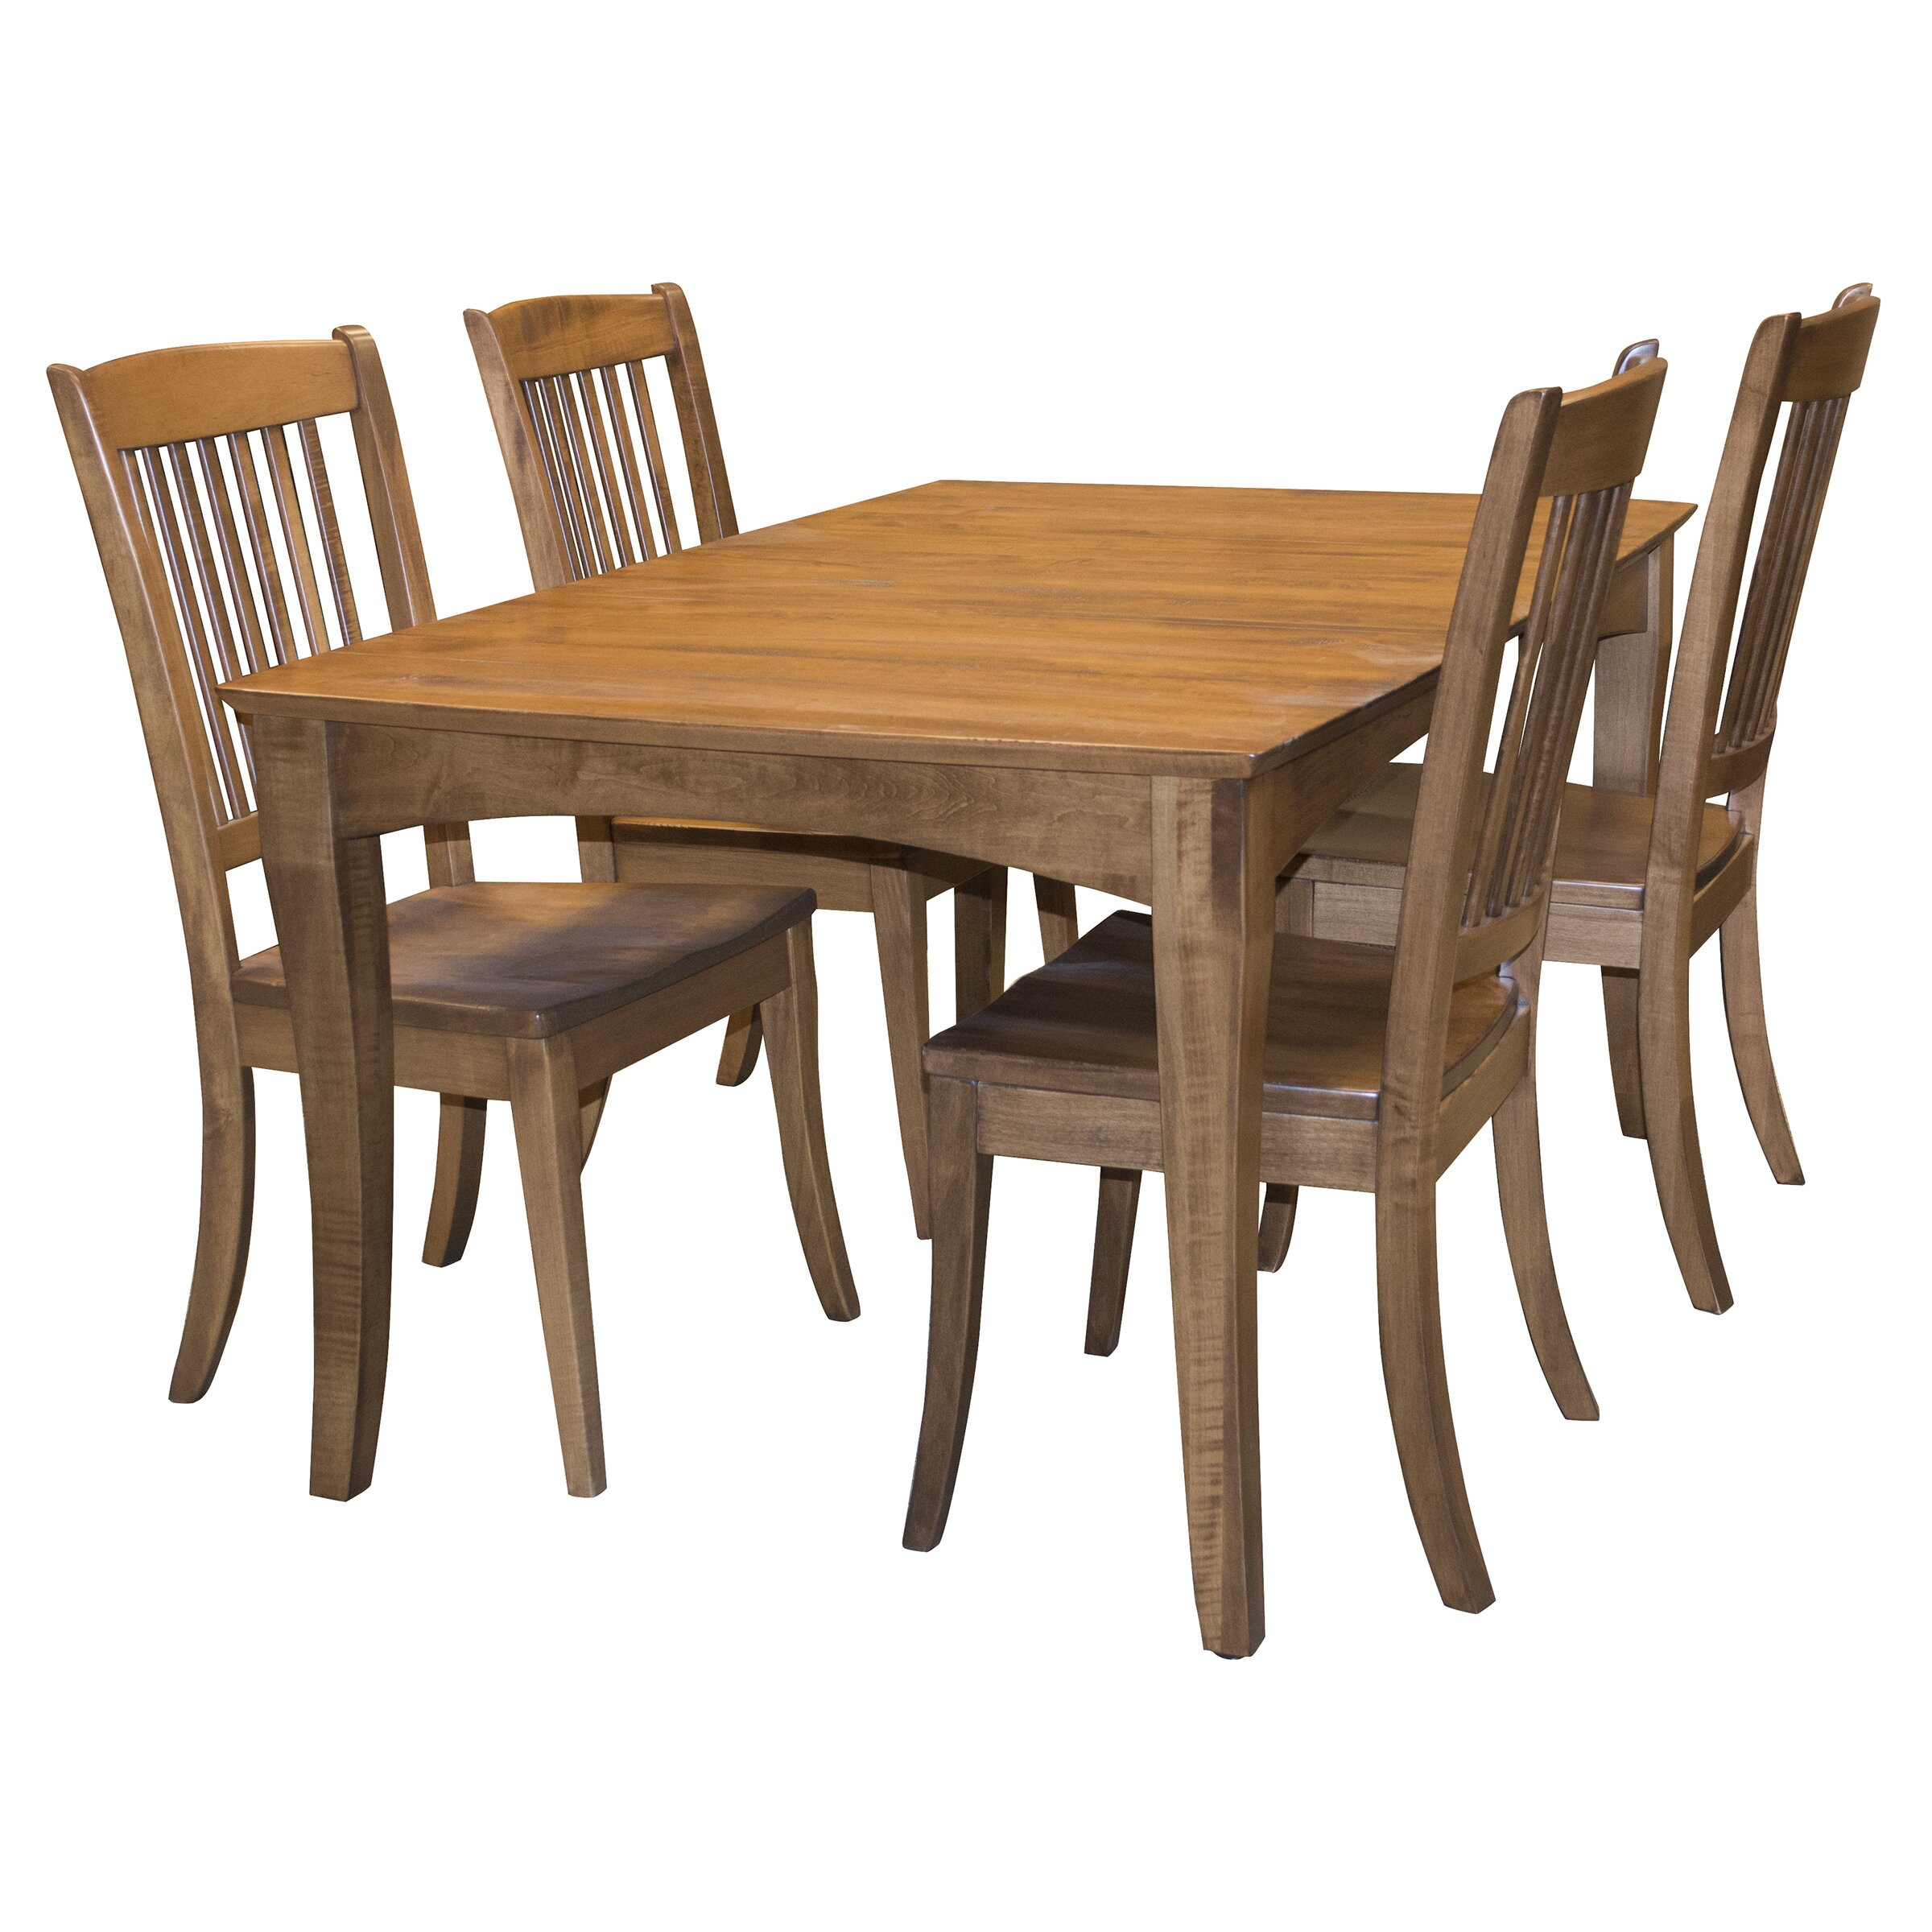 Standard height of dining table standard furniture cameron for Best dining room table height